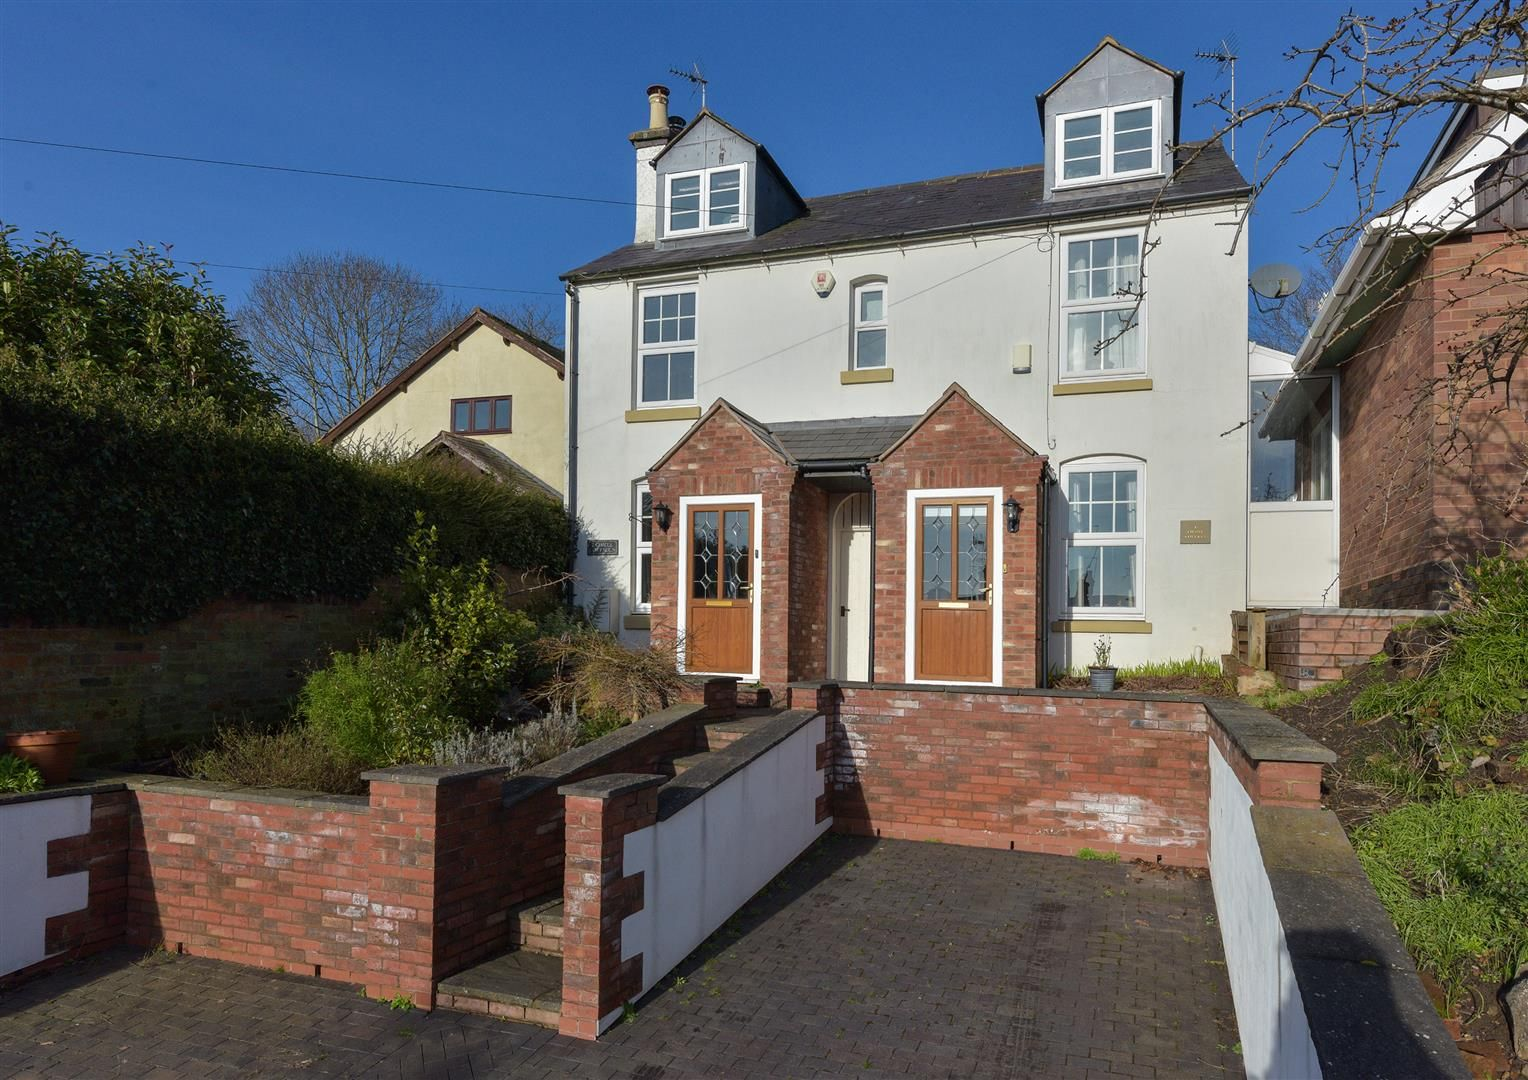 3 bed house for sale in Clent, DY9